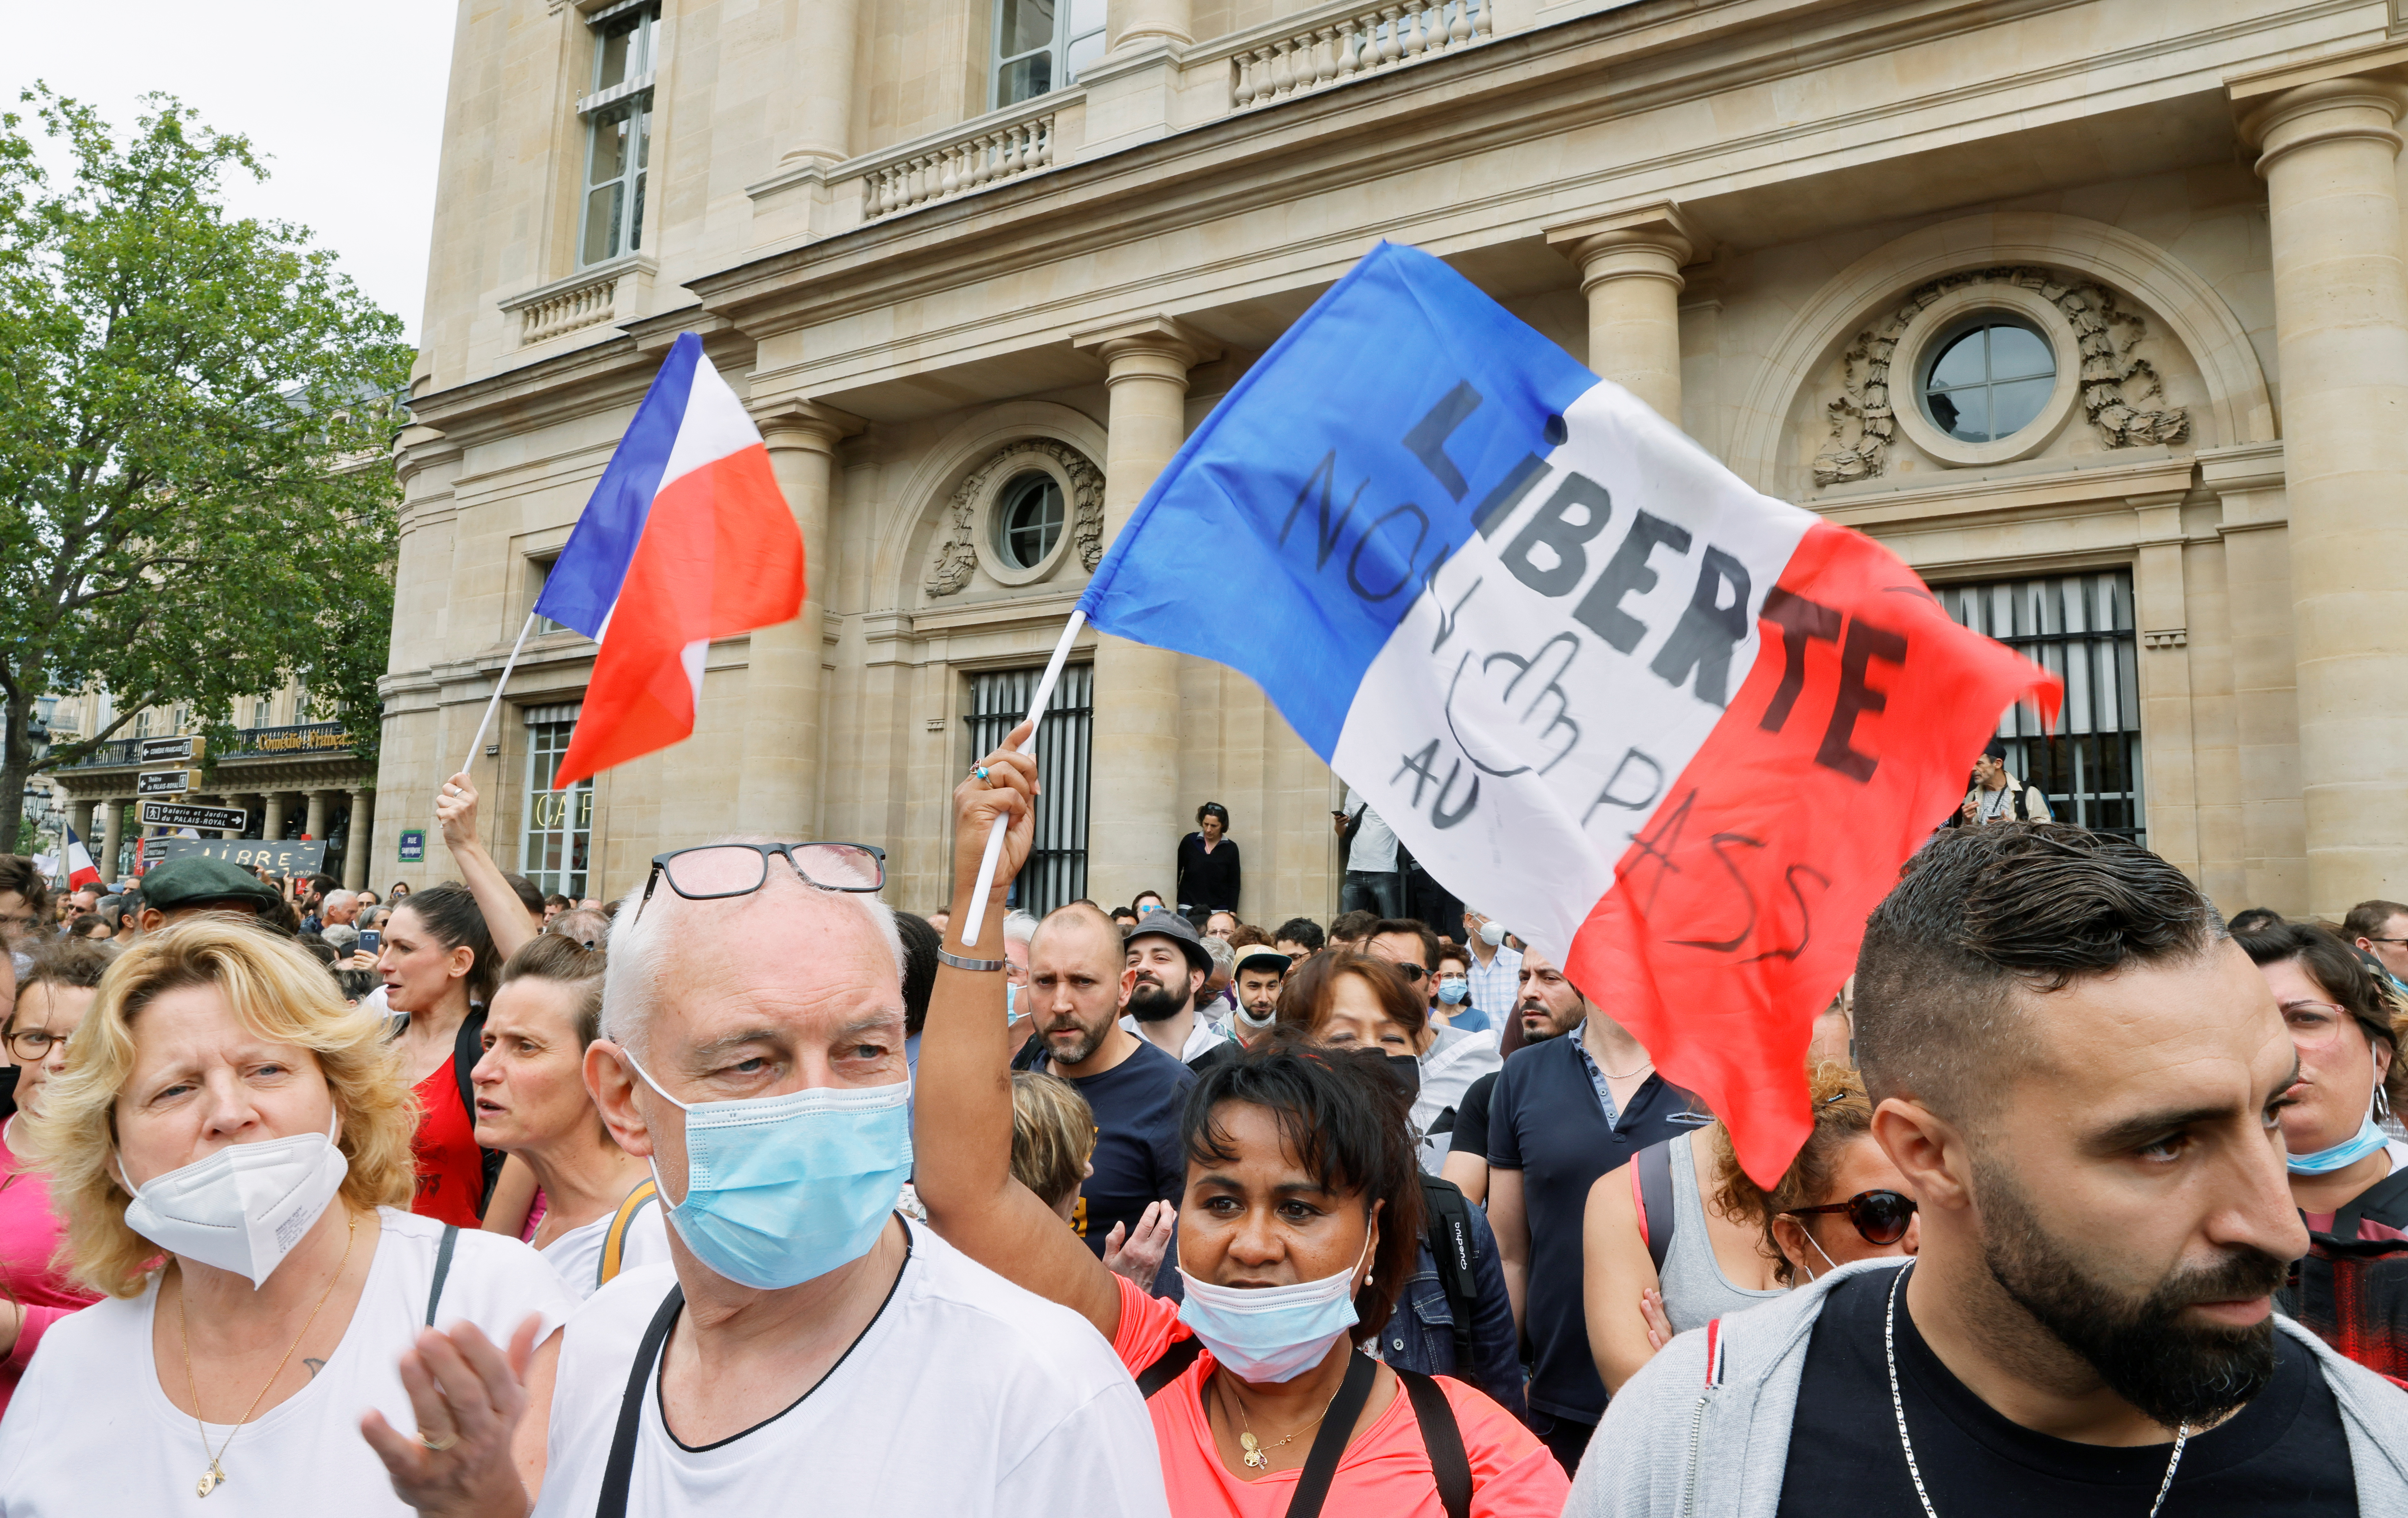 Demonstrators attend a protest against the new measures announced by French President Emmanuel Macron to fight the coronavirus disease (COVID-19) outbreak, in Paris, France, July 17, 2021. REUTERS/Pascal Rossignol